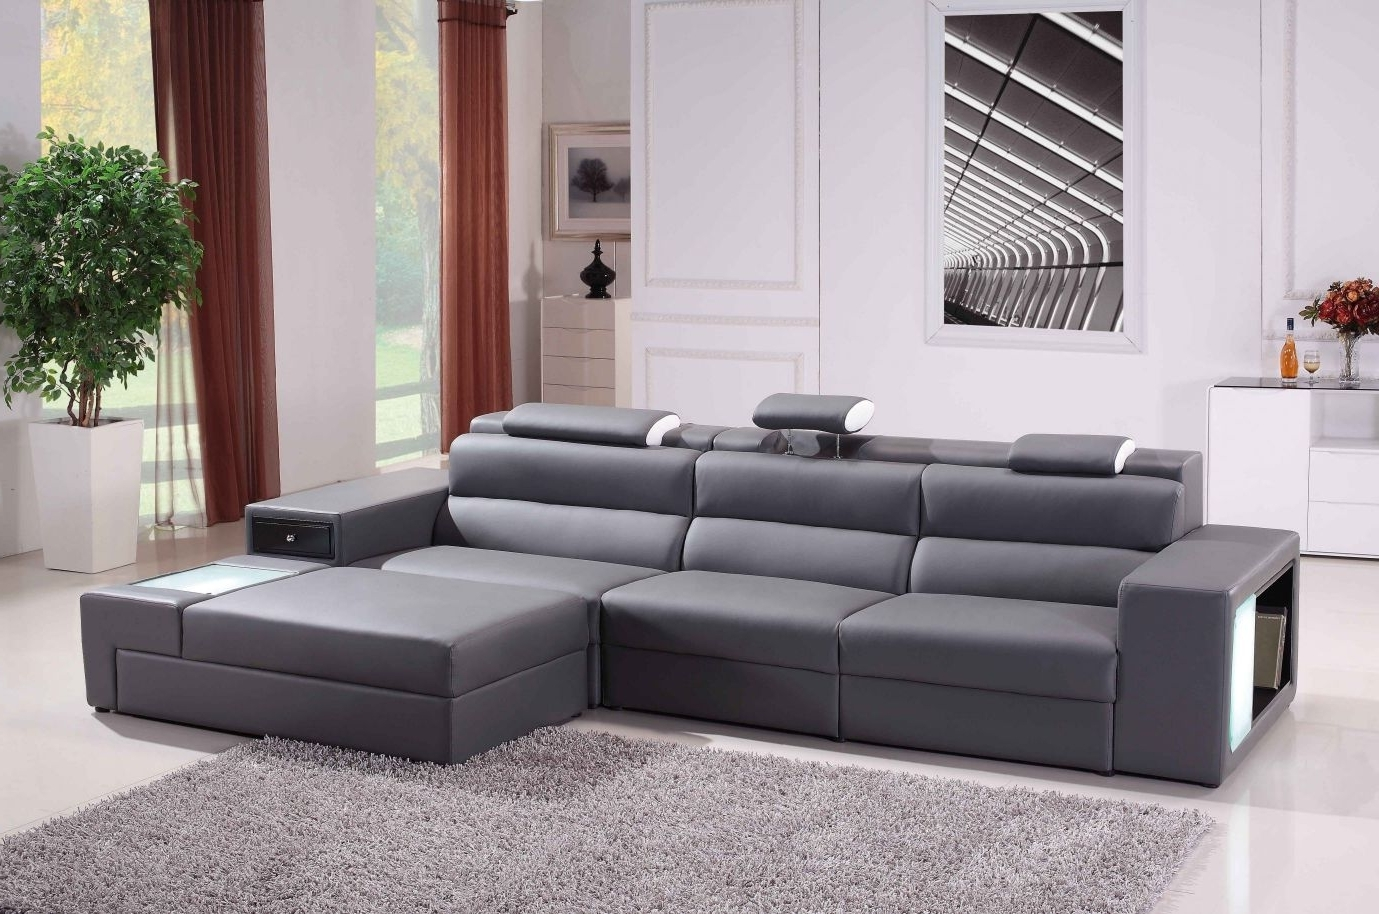 Recent High Quality Sectional Sofas Inside Stunning Bedroom Grey Couch Red Sofa Chaise Real Leather Picture (View 10 of 20)